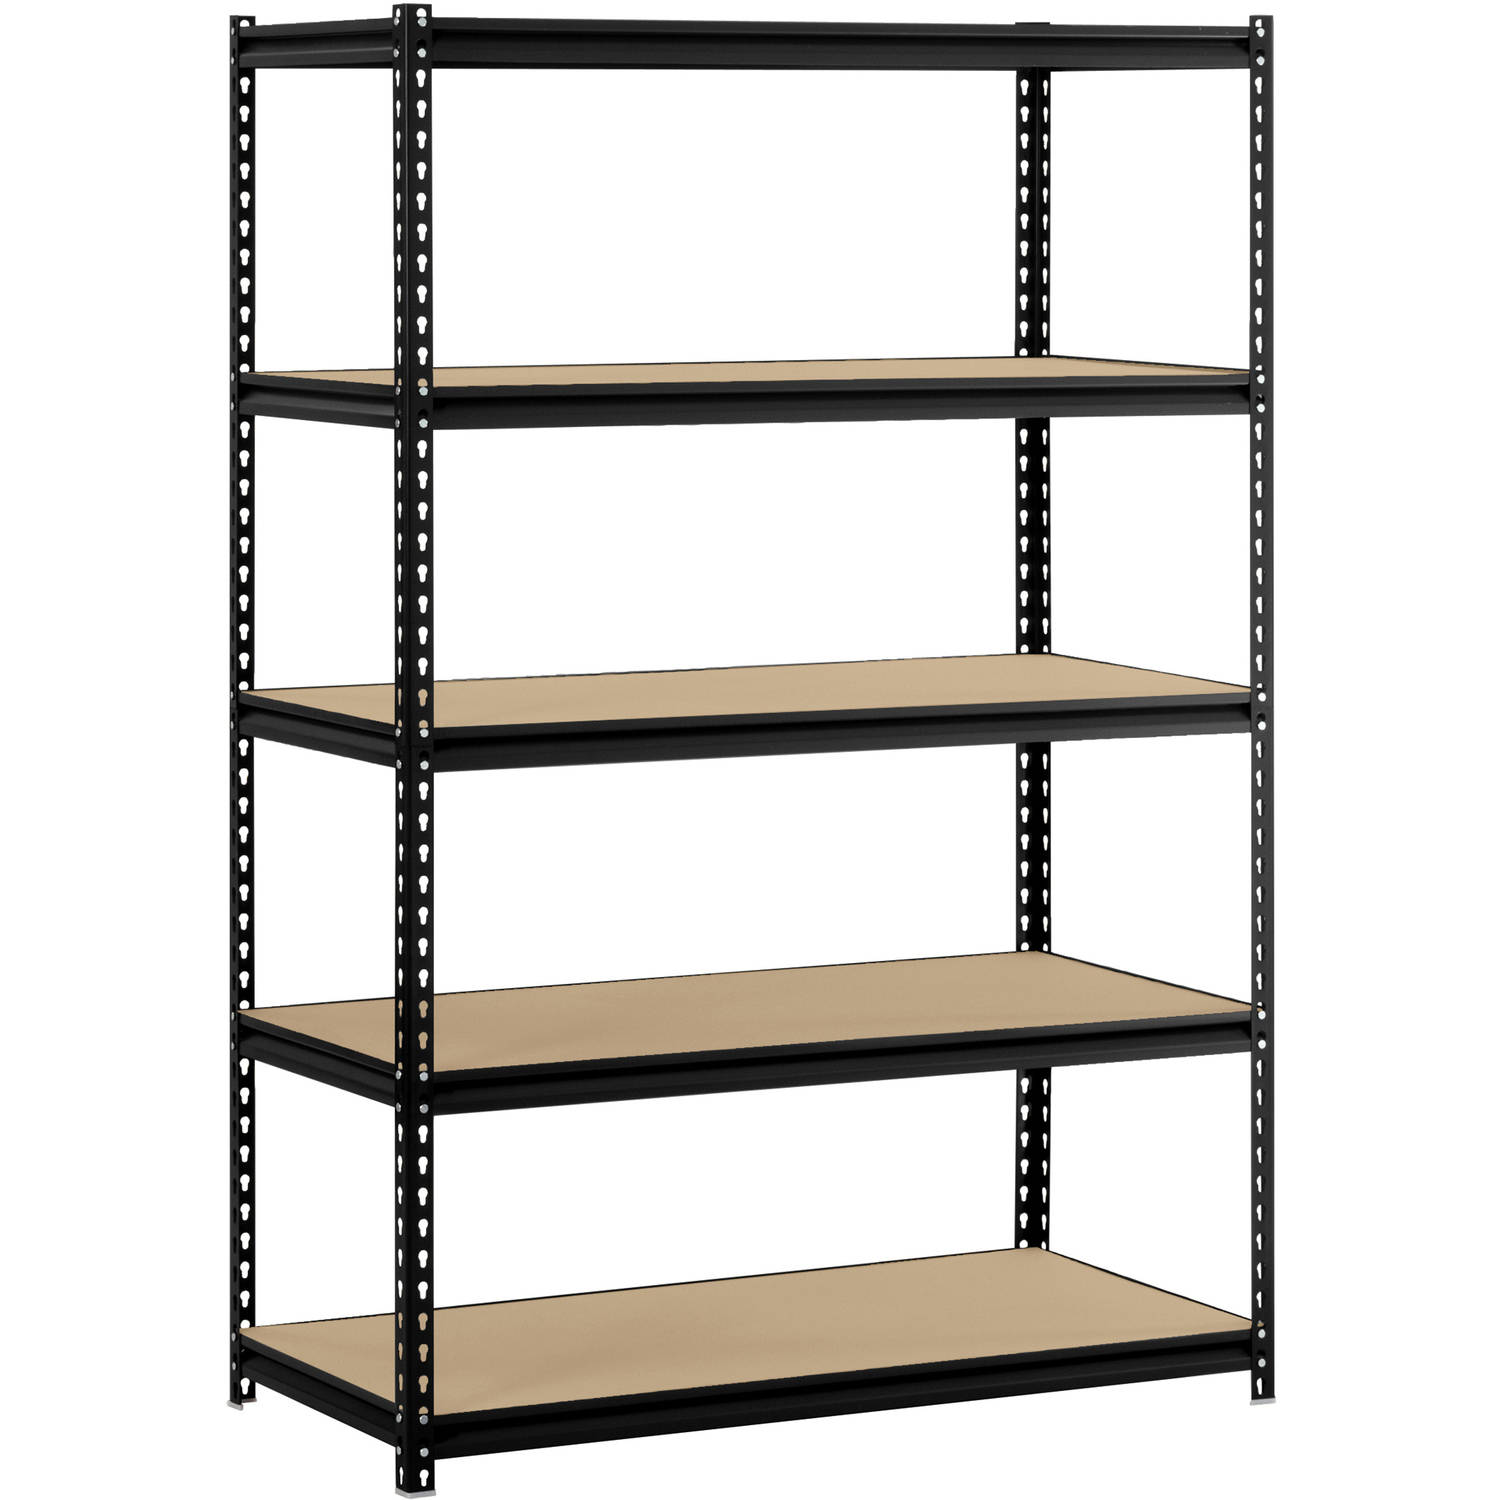 "Edsal 48""W x 24""D x 72""H 5-Shelf Steel Shelving, Black"